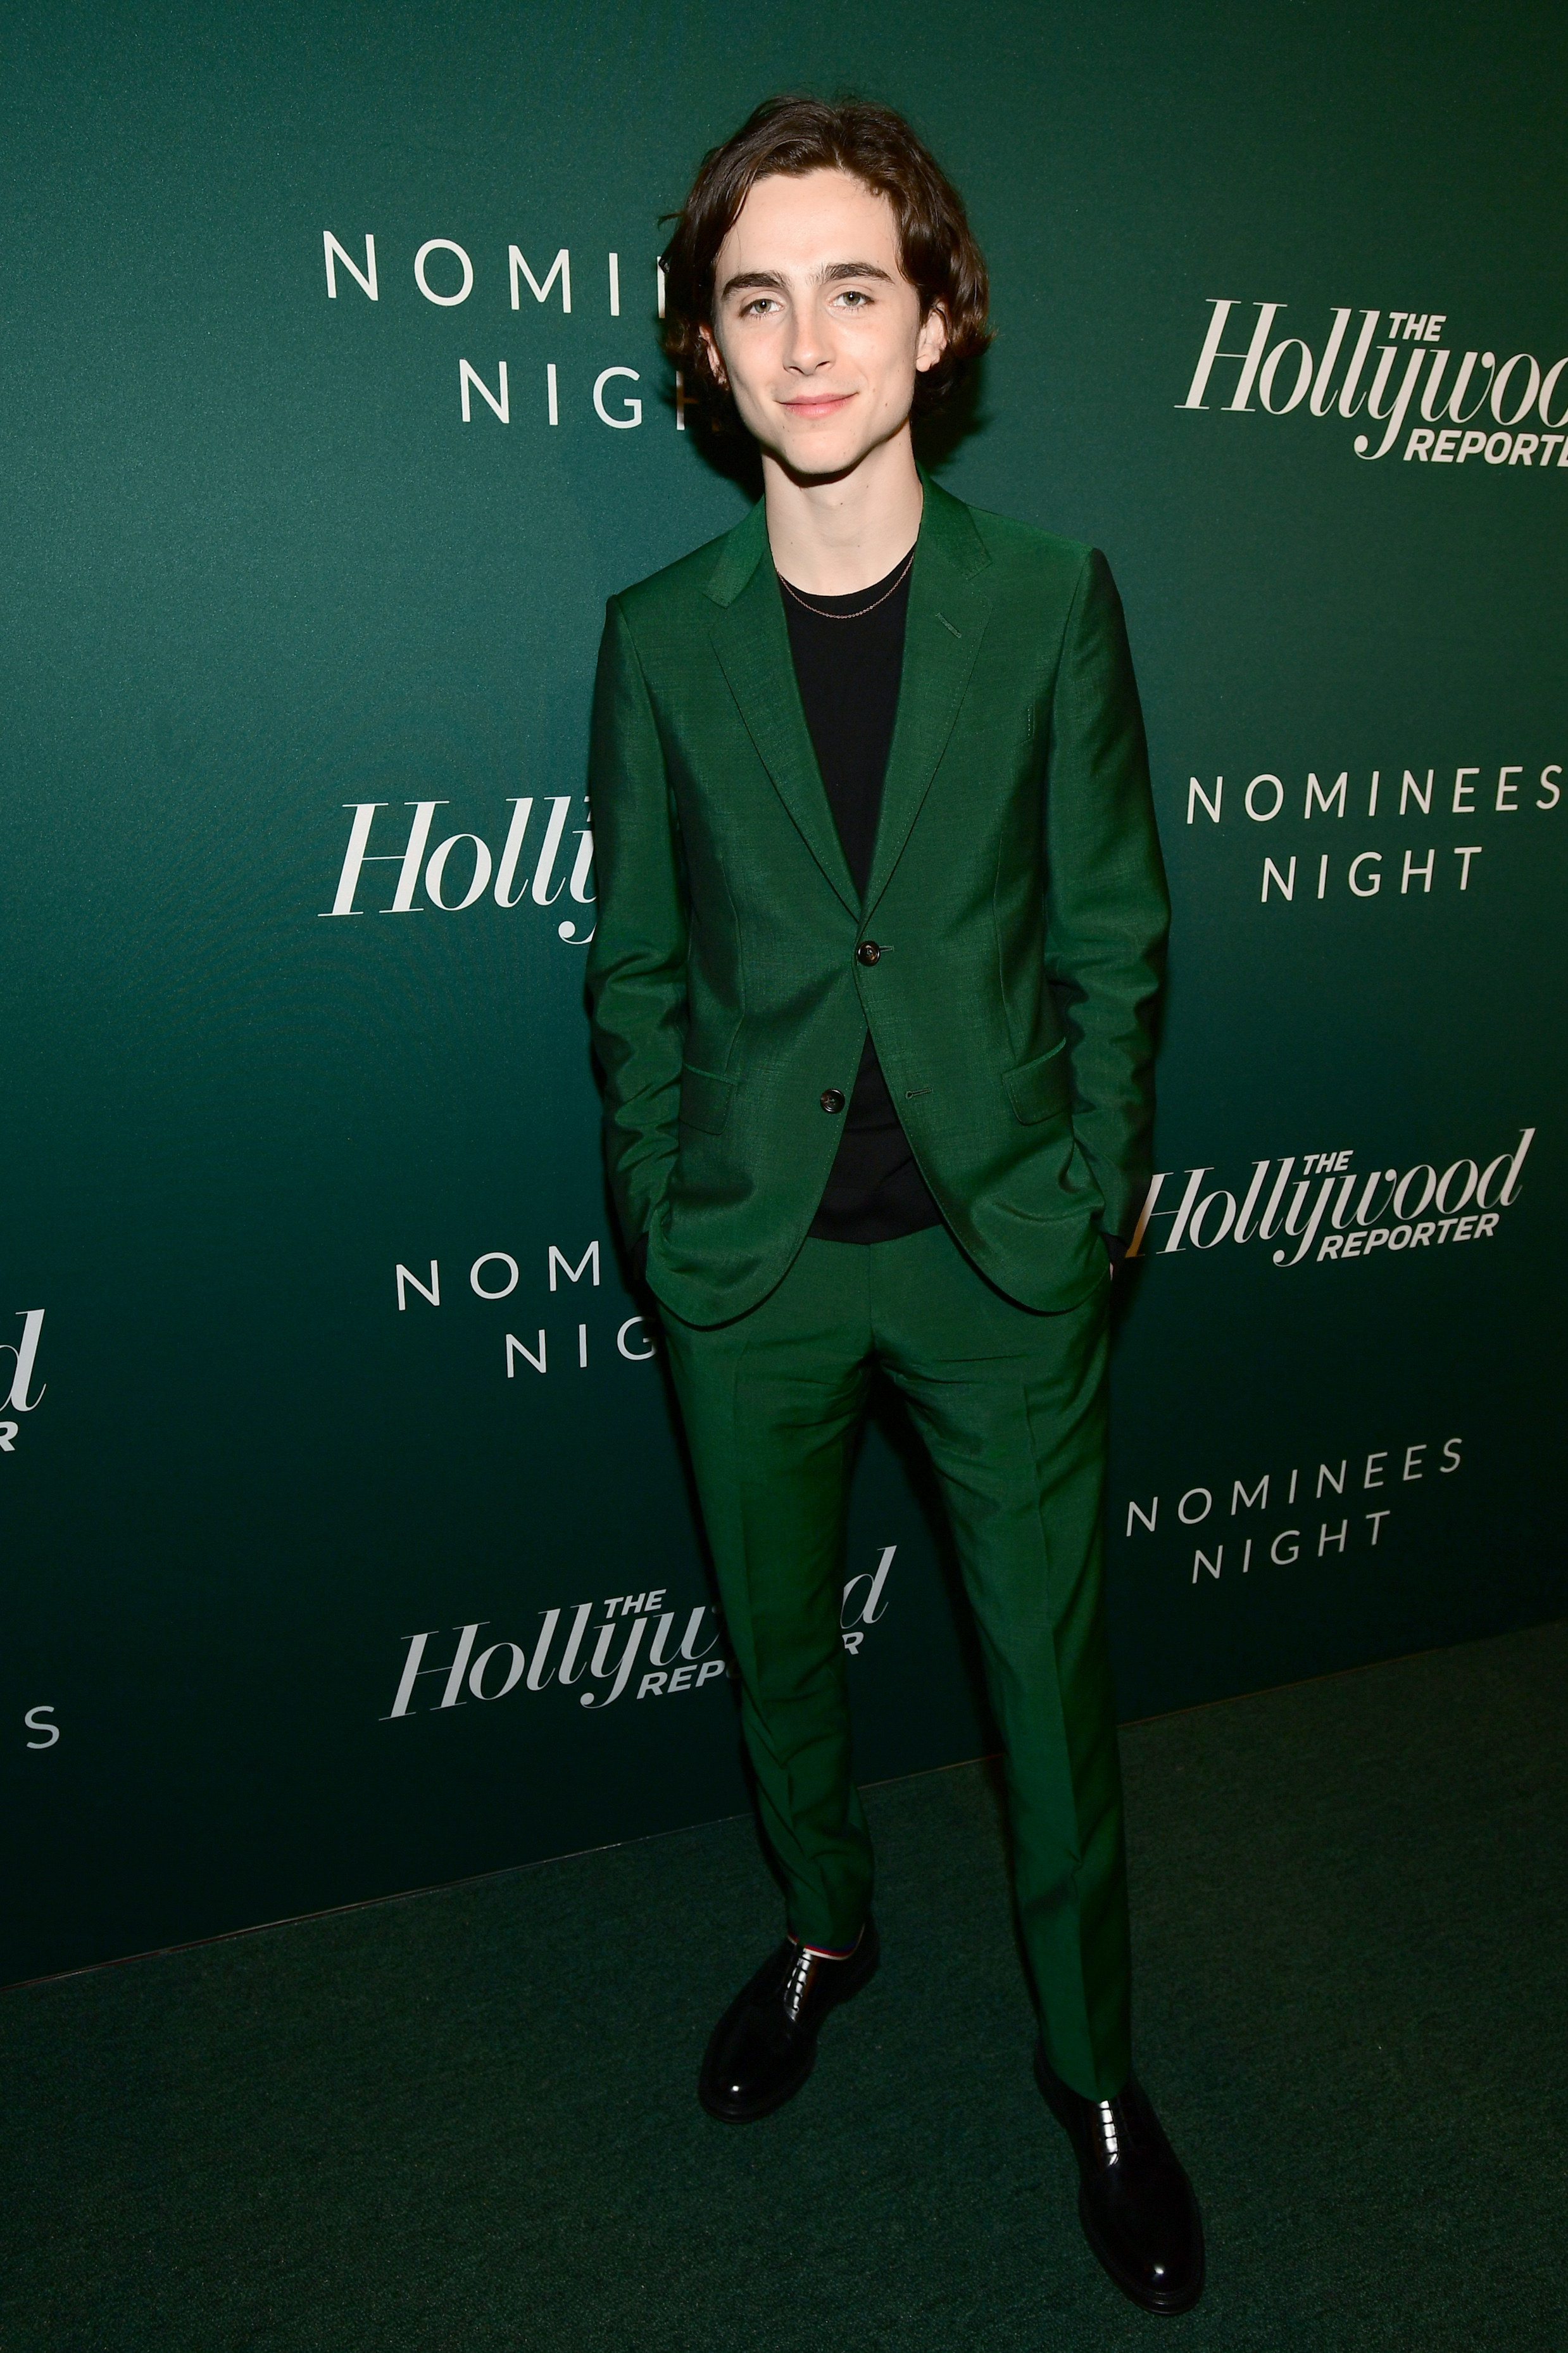 Timothée wears a forest green suit in front of the same color backdrop and carpet